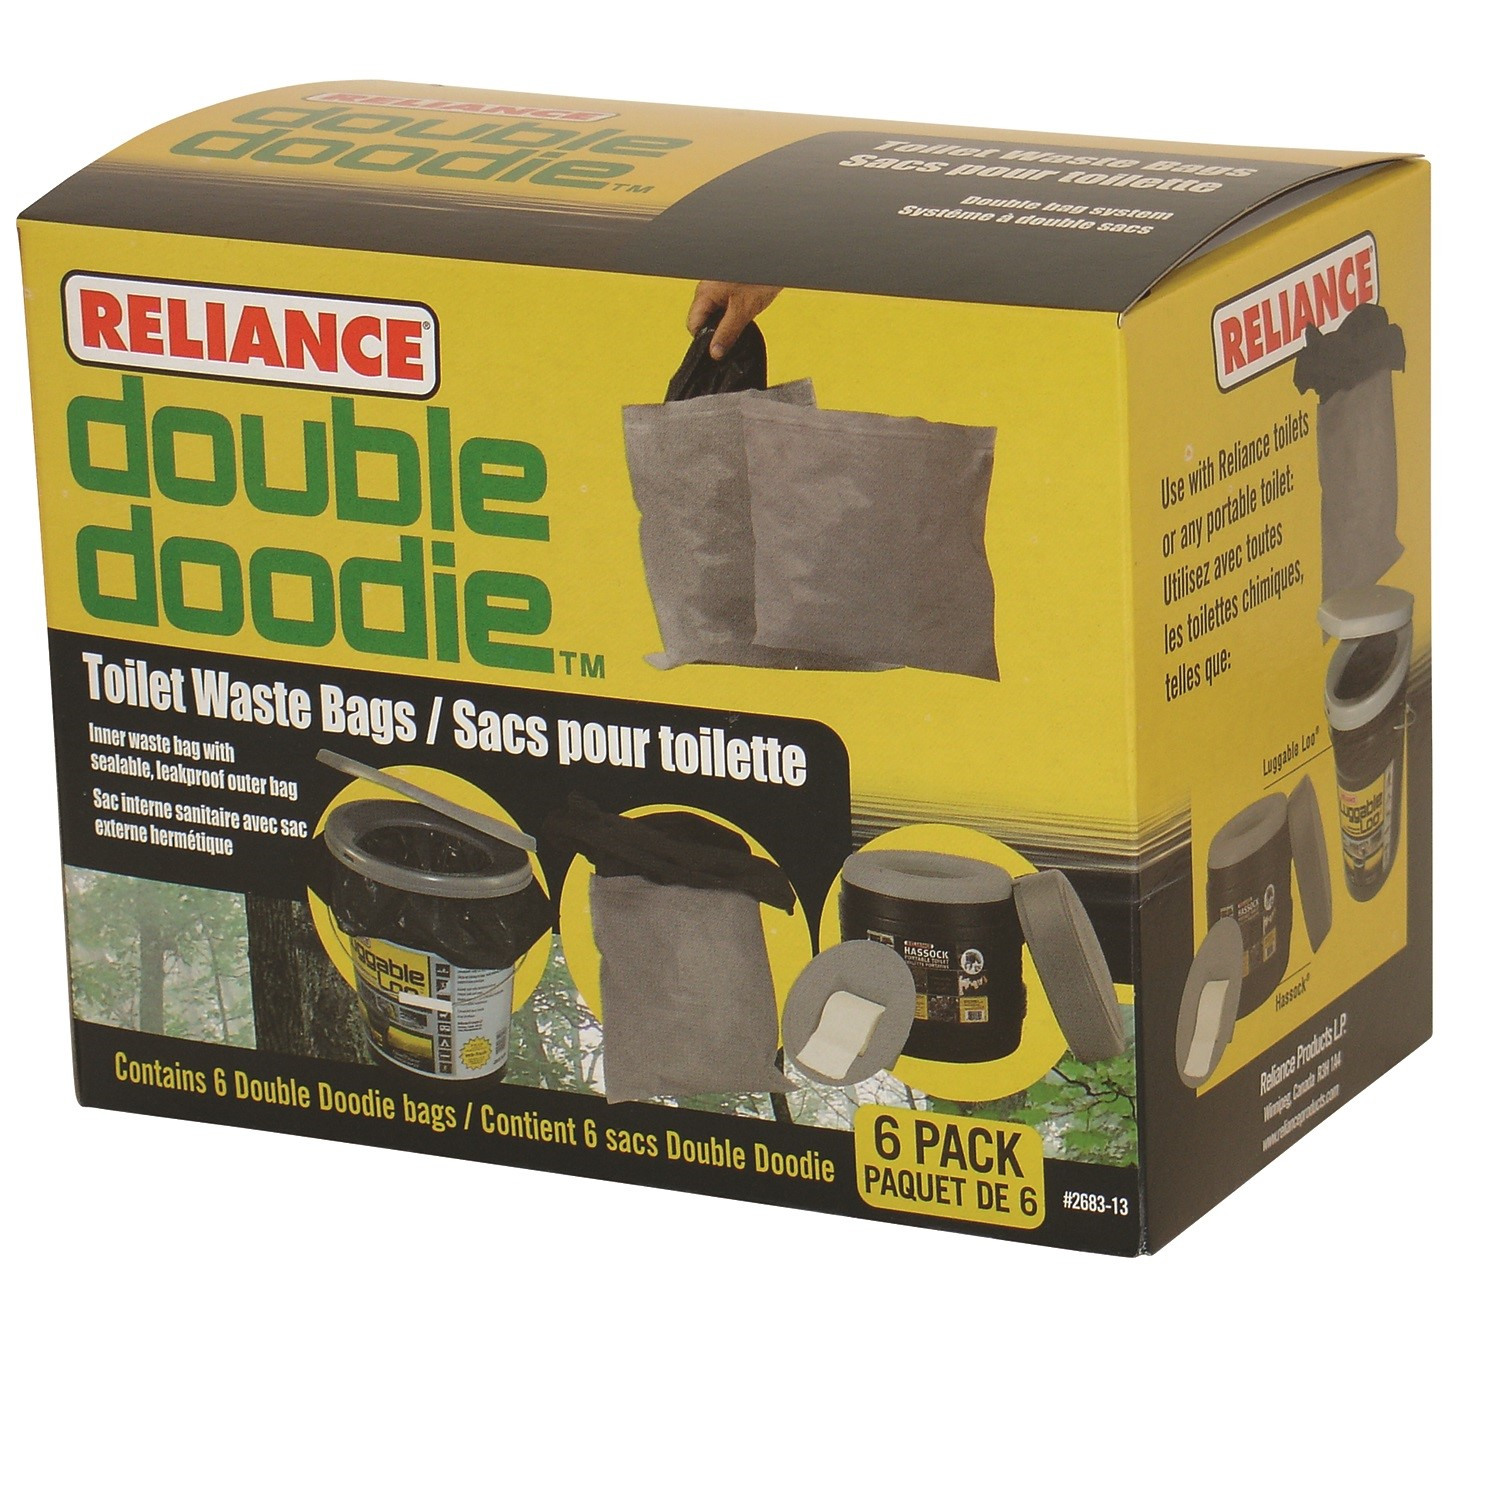 Reliance Double Doodie Toilet Waste Bag 6 Pack 2683-13